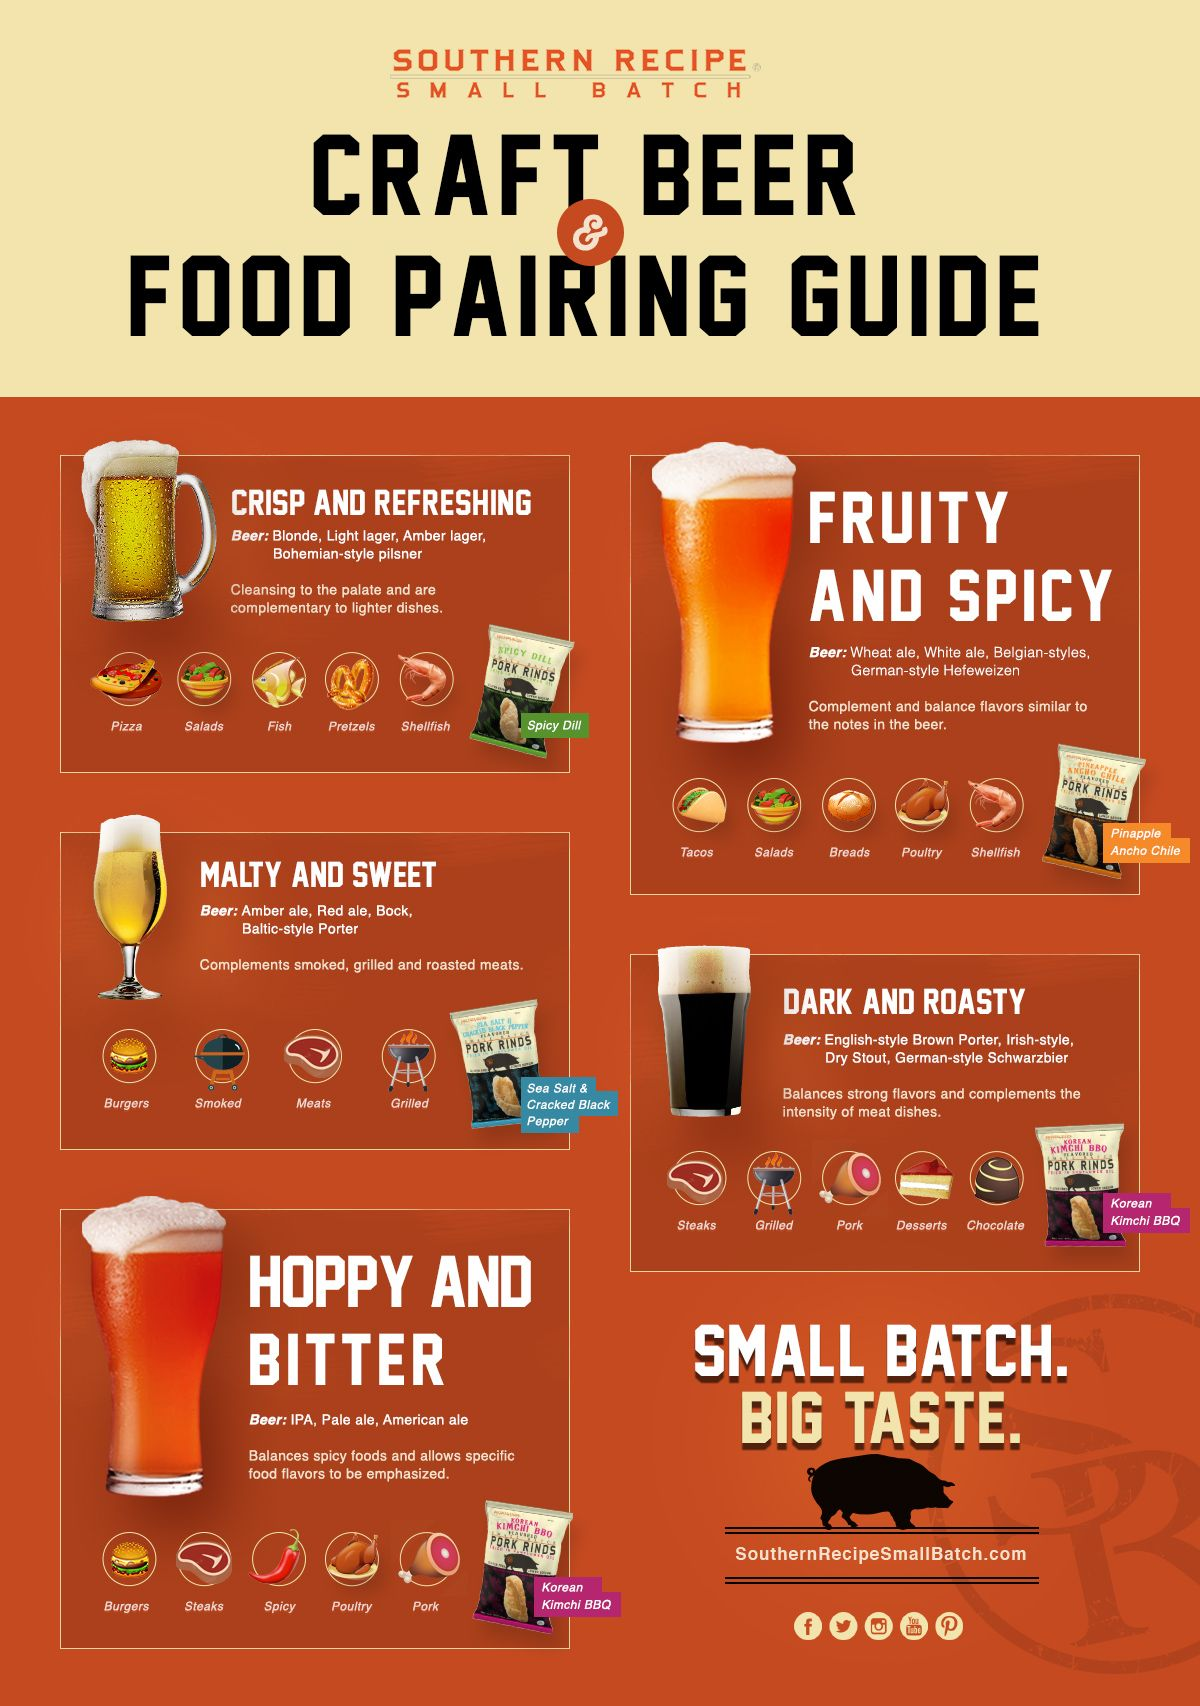 Craft Beer And Food Pairing Guide Pork Rinds Beer Food Pairings Craft Beer Food Pairing Beer Recipes